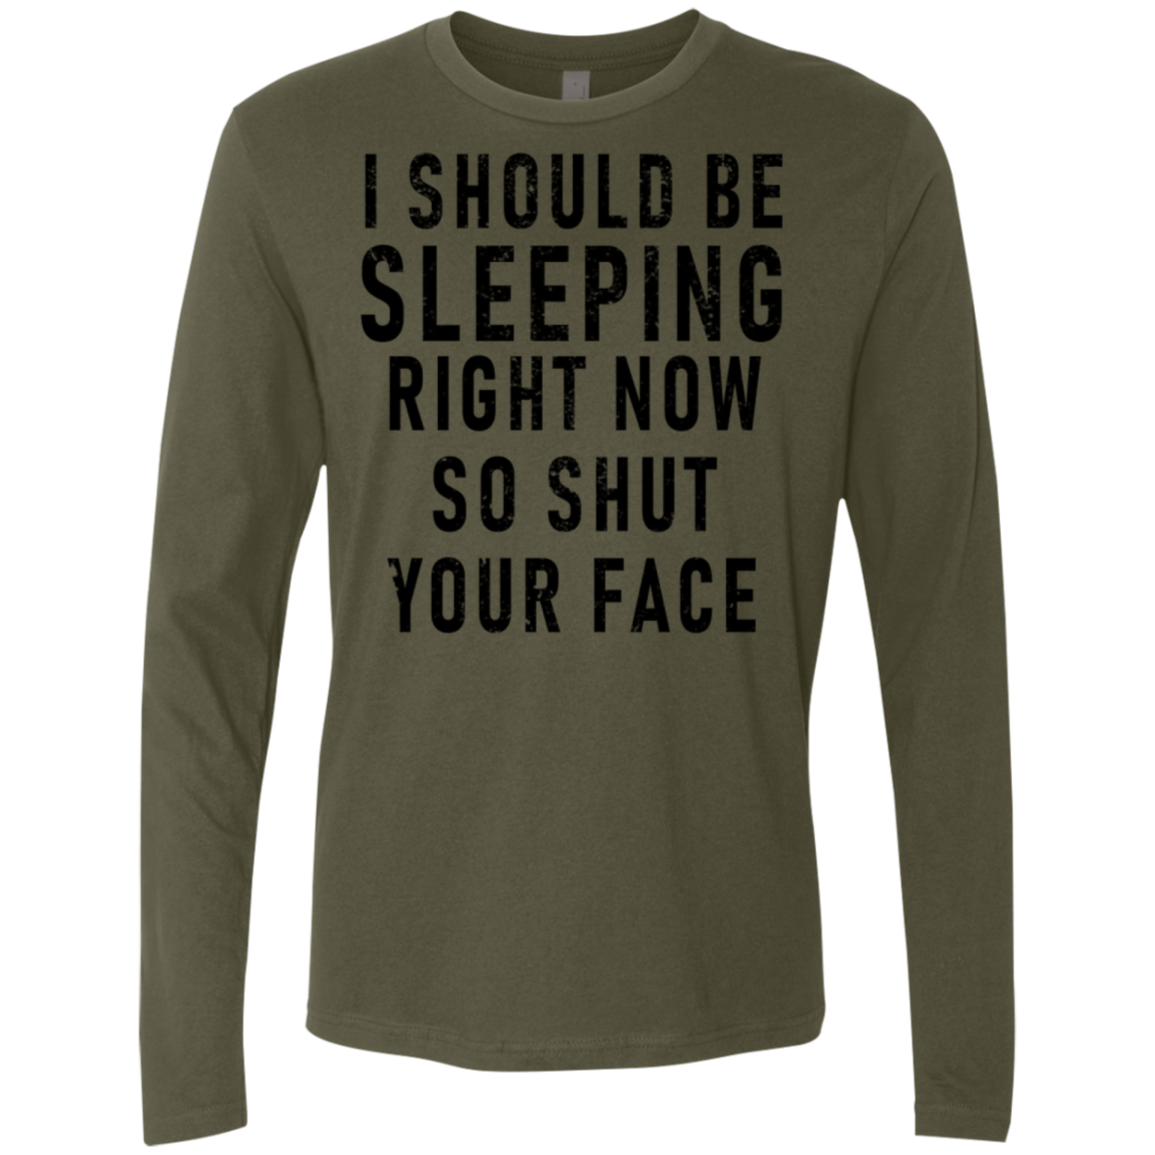 I Should Be Sleeping Right Now So Shut Your Face Men's Long Sleeve Tee